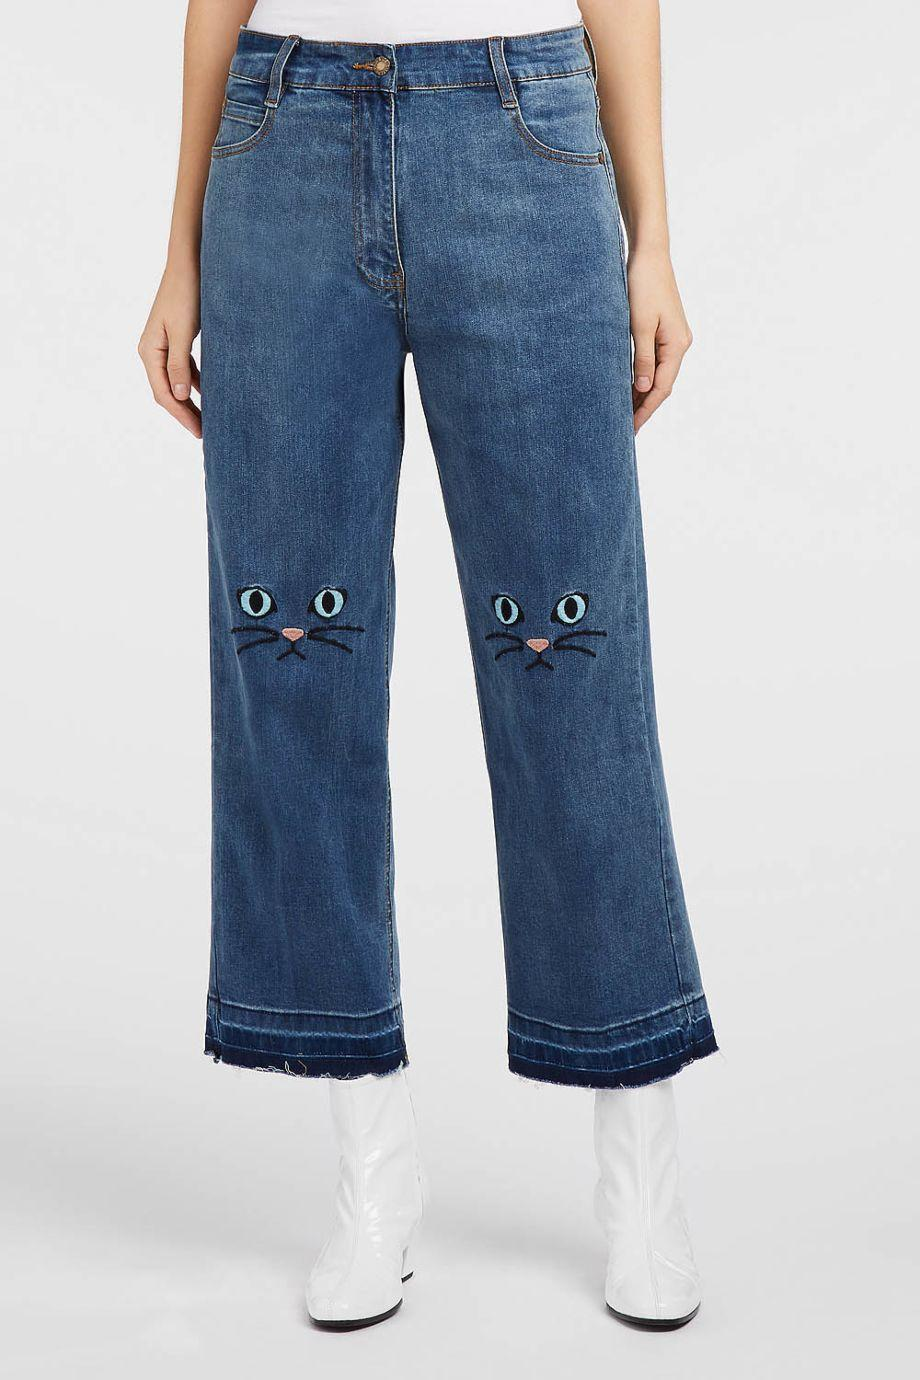 Paul & Joe Sister King Cropped Embroidered Wide-Leg Jeans